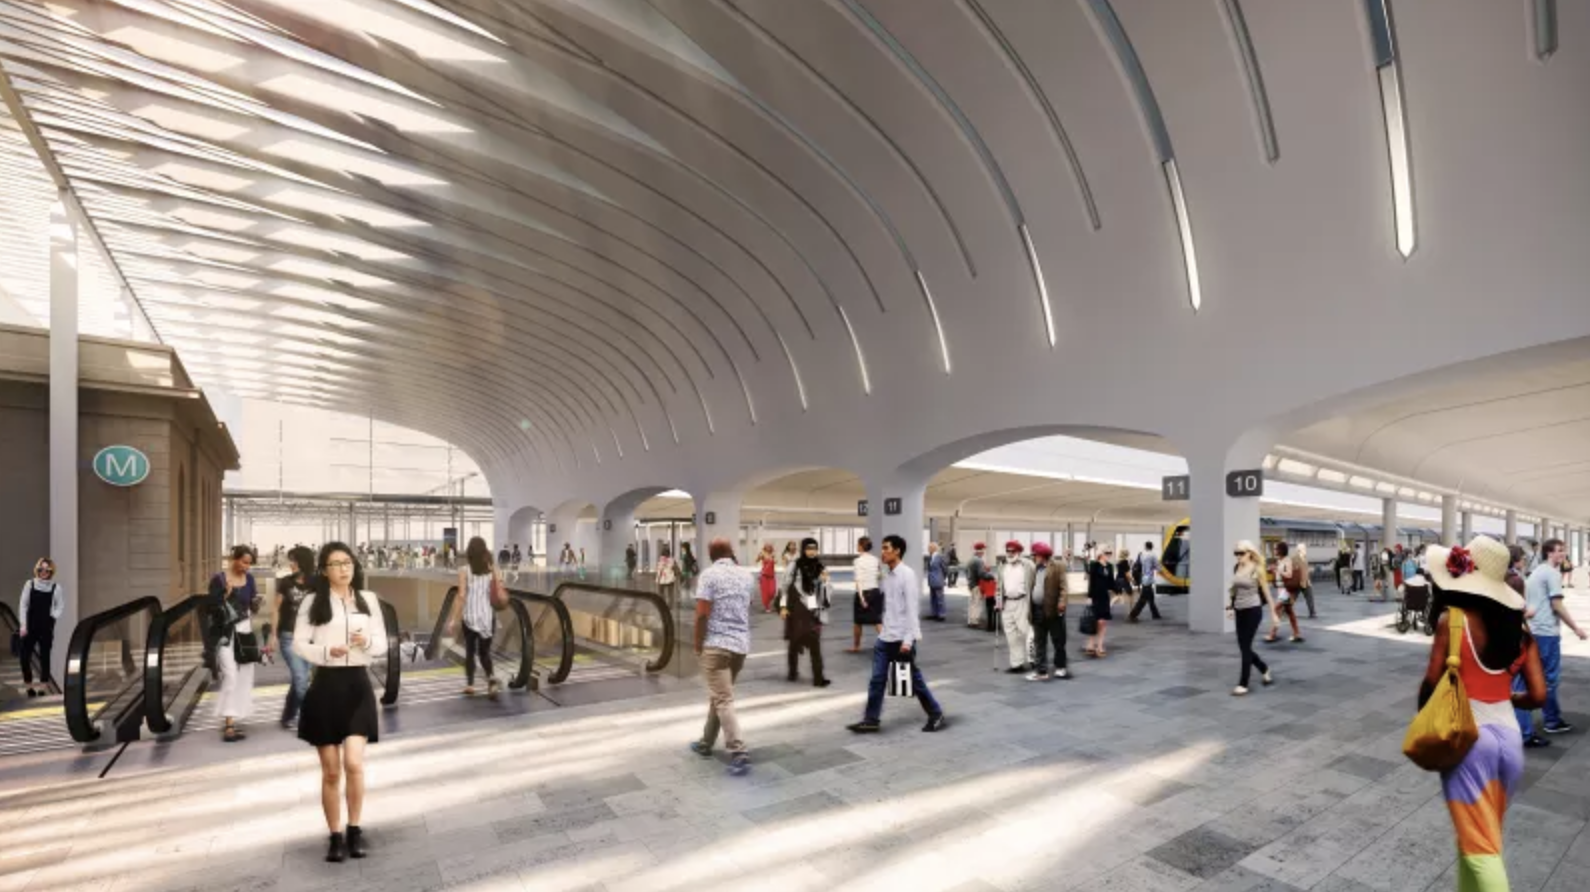 Sydney Central Station is currently undergoing a $955 million urban transformation.